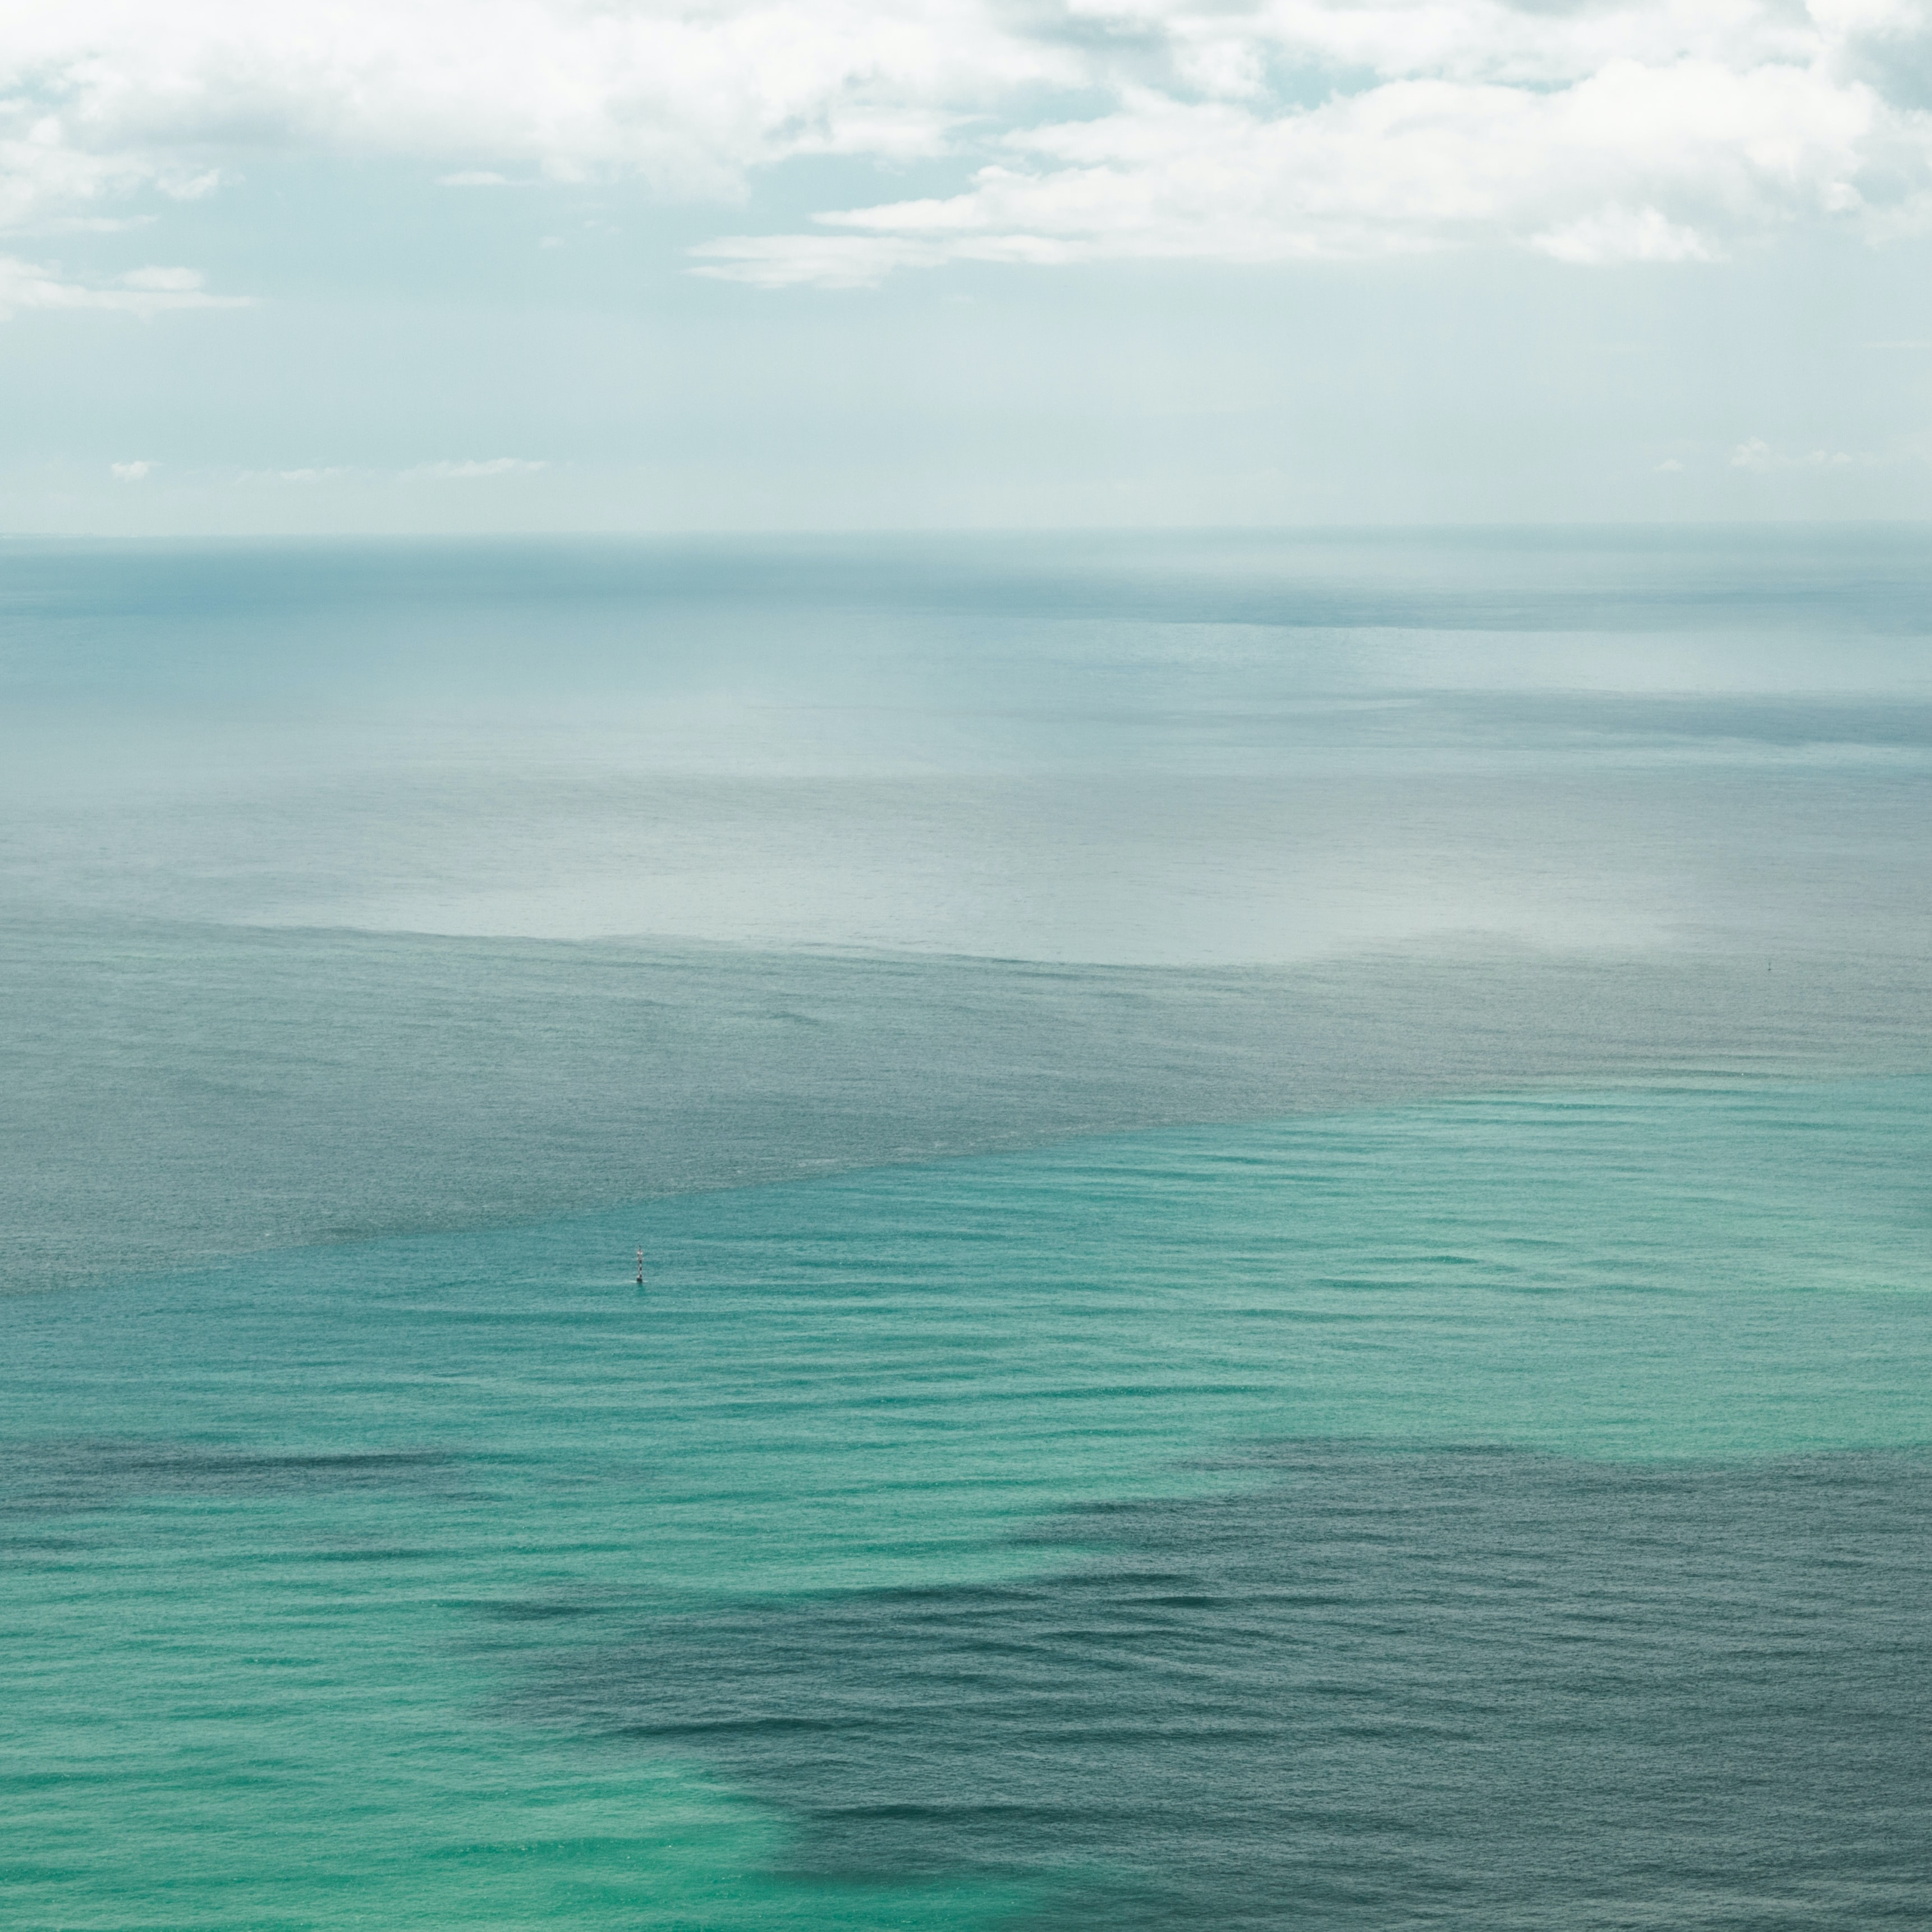 gray ocean water under white cloudy sky